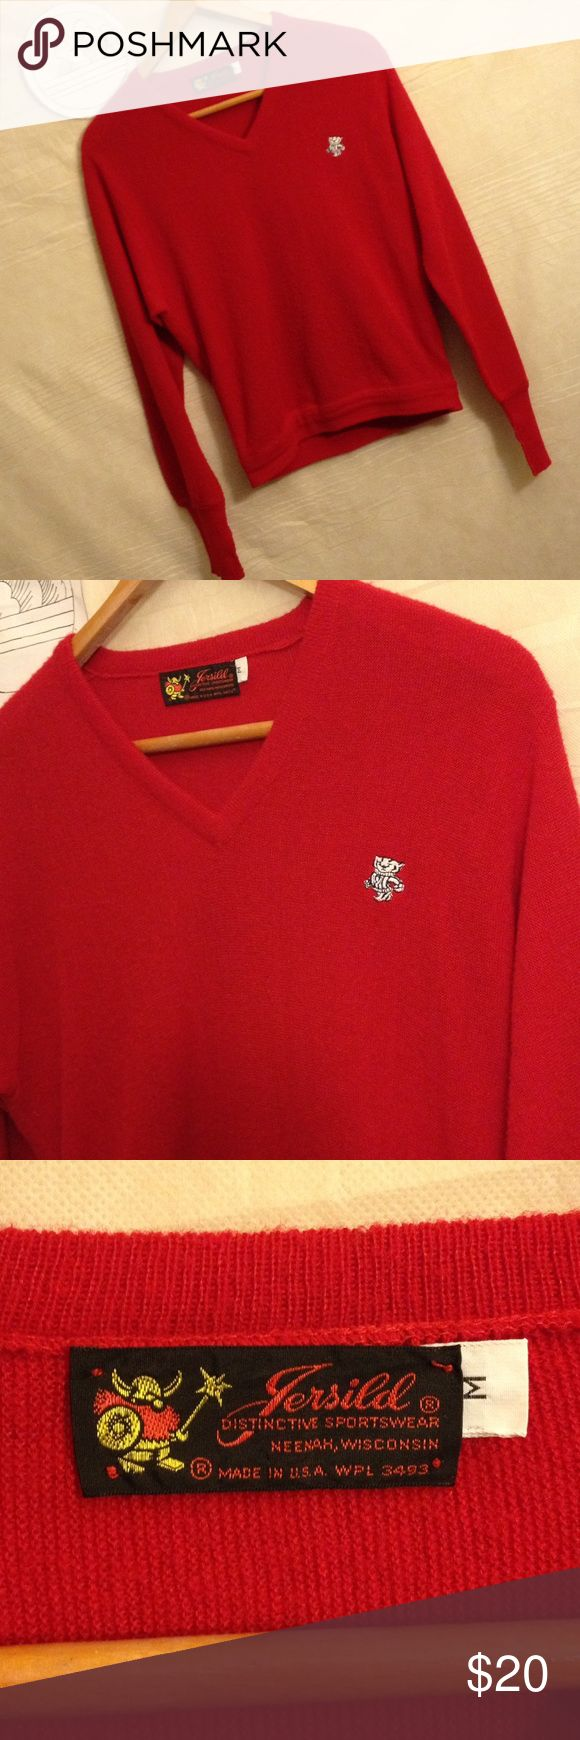 Vtg Wisconsin Badgers v-neck sweater size M Used sweater with no holes, rips or tears shipping from smoke free environment, thank you.  SKU 120316.001.00Y jersild Sweaters V-Neck